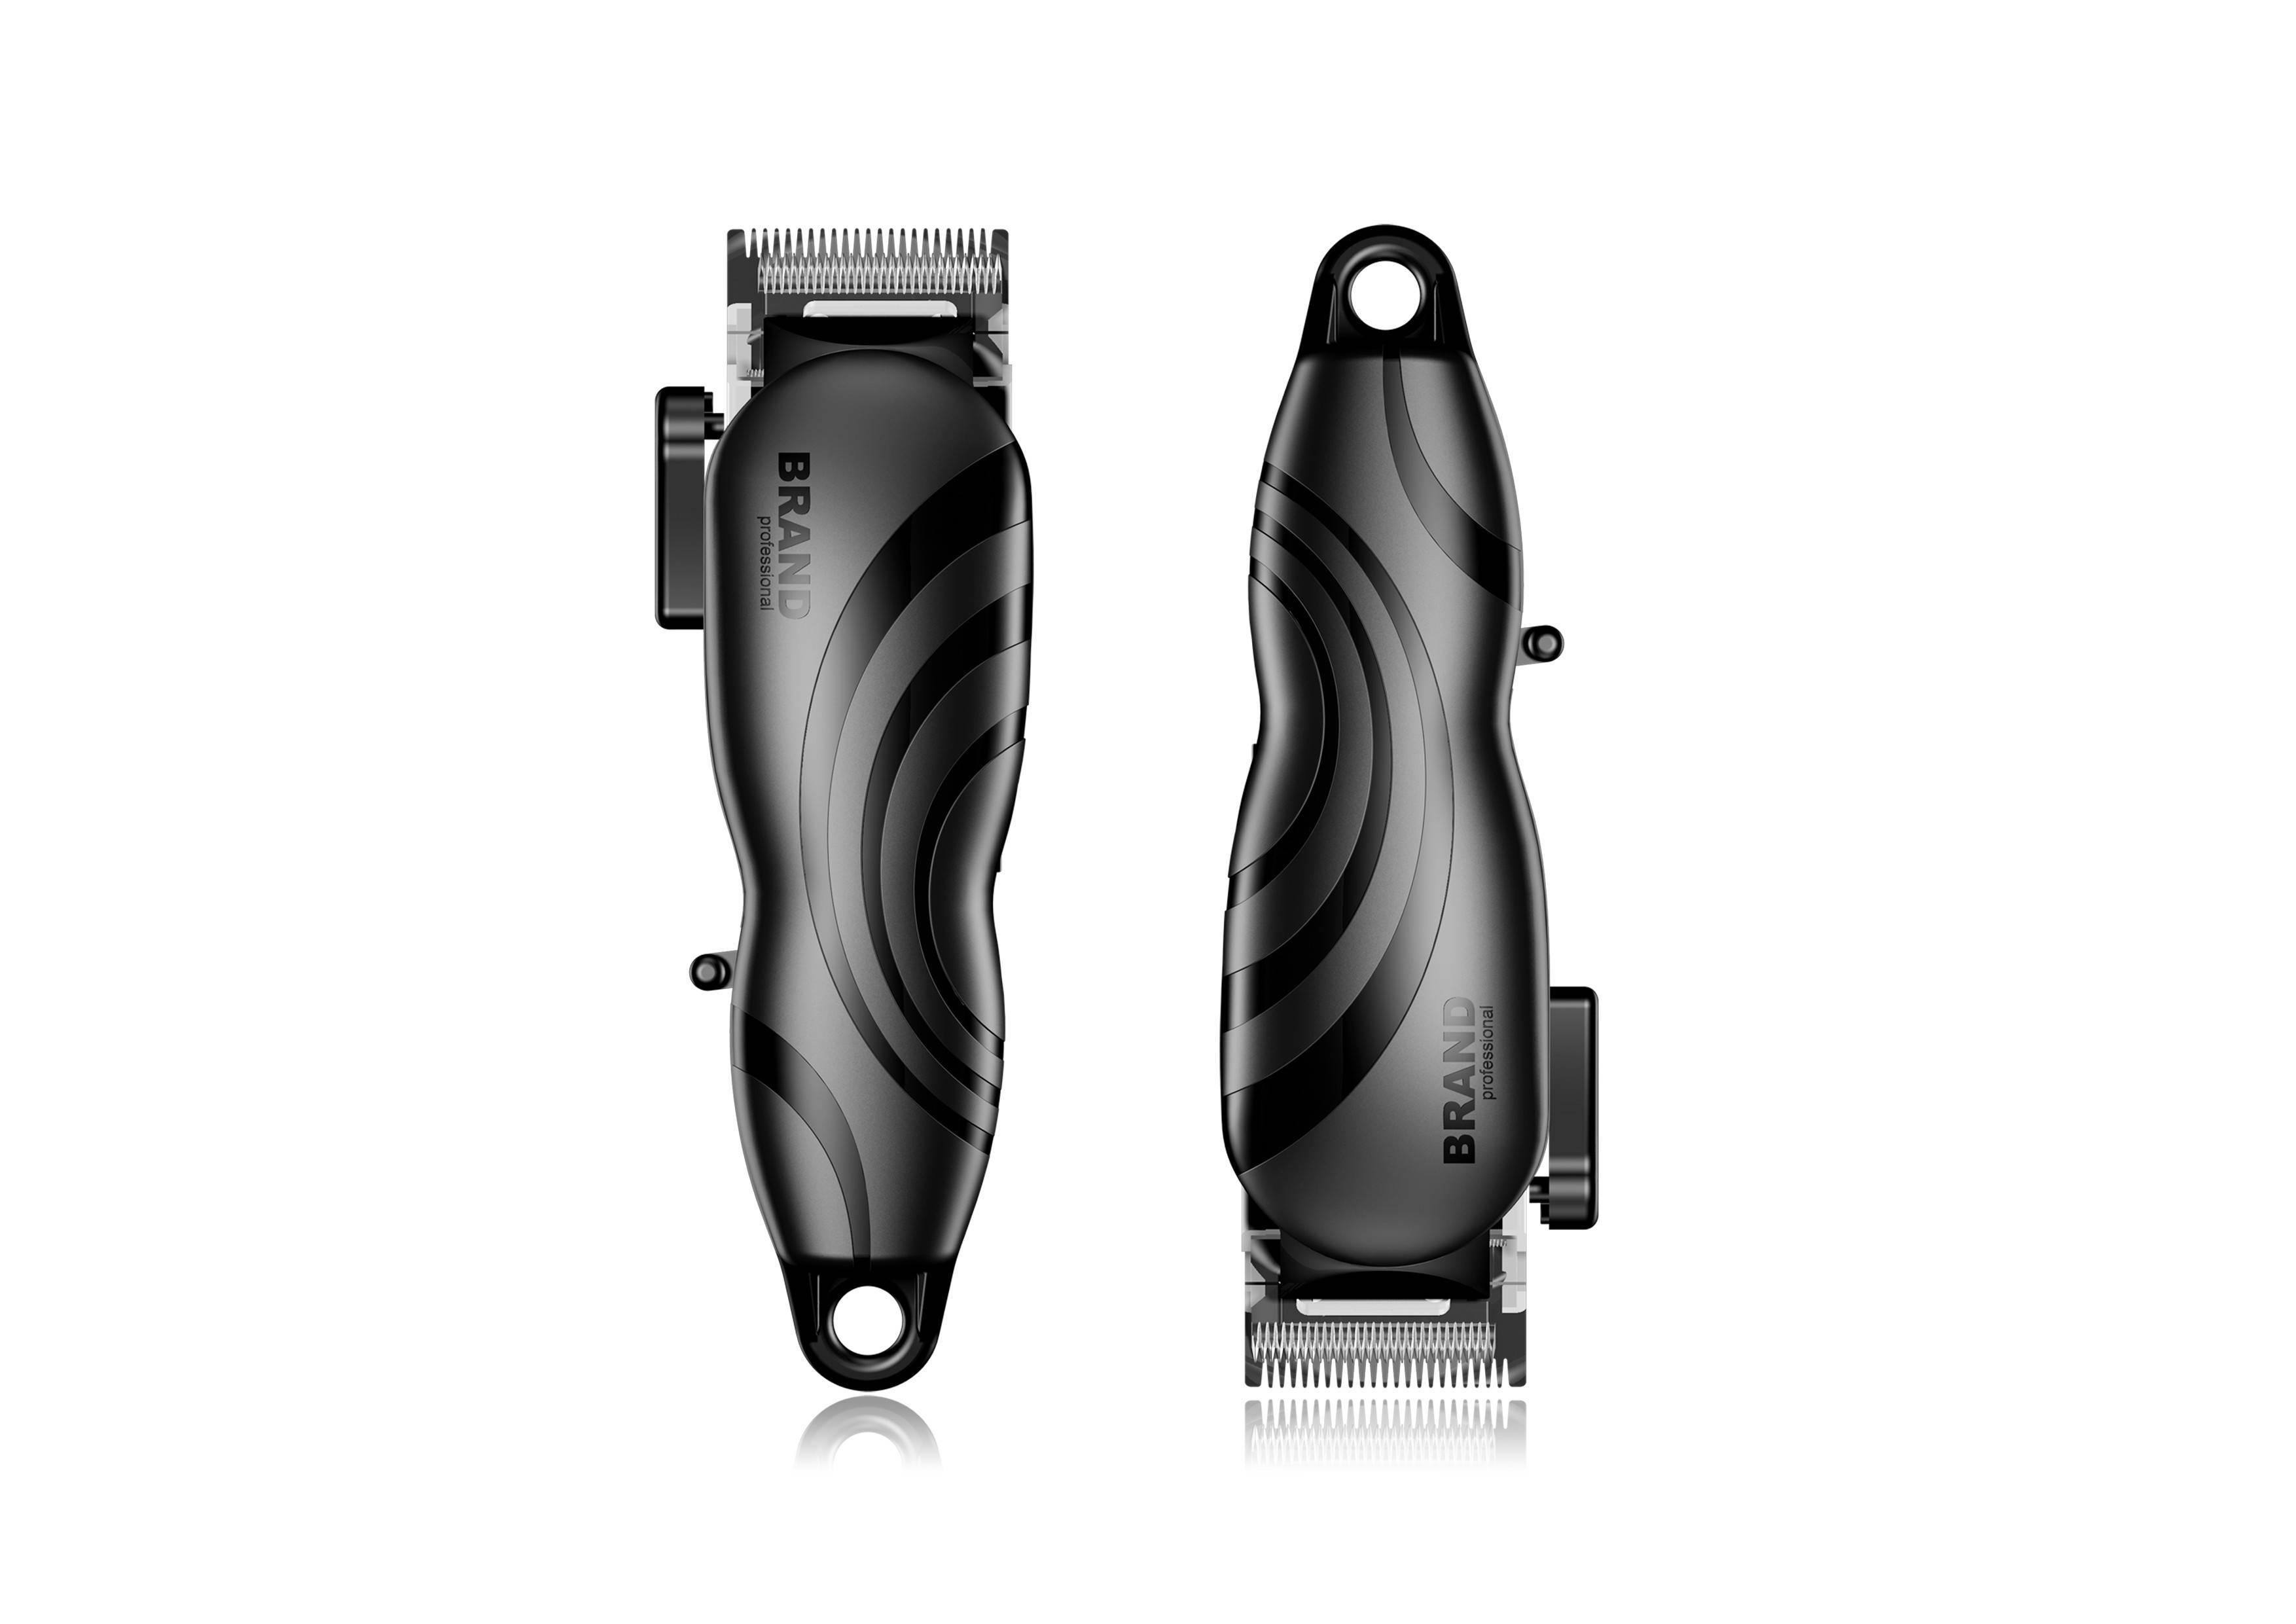 professional electrical hair clipper manufacturer